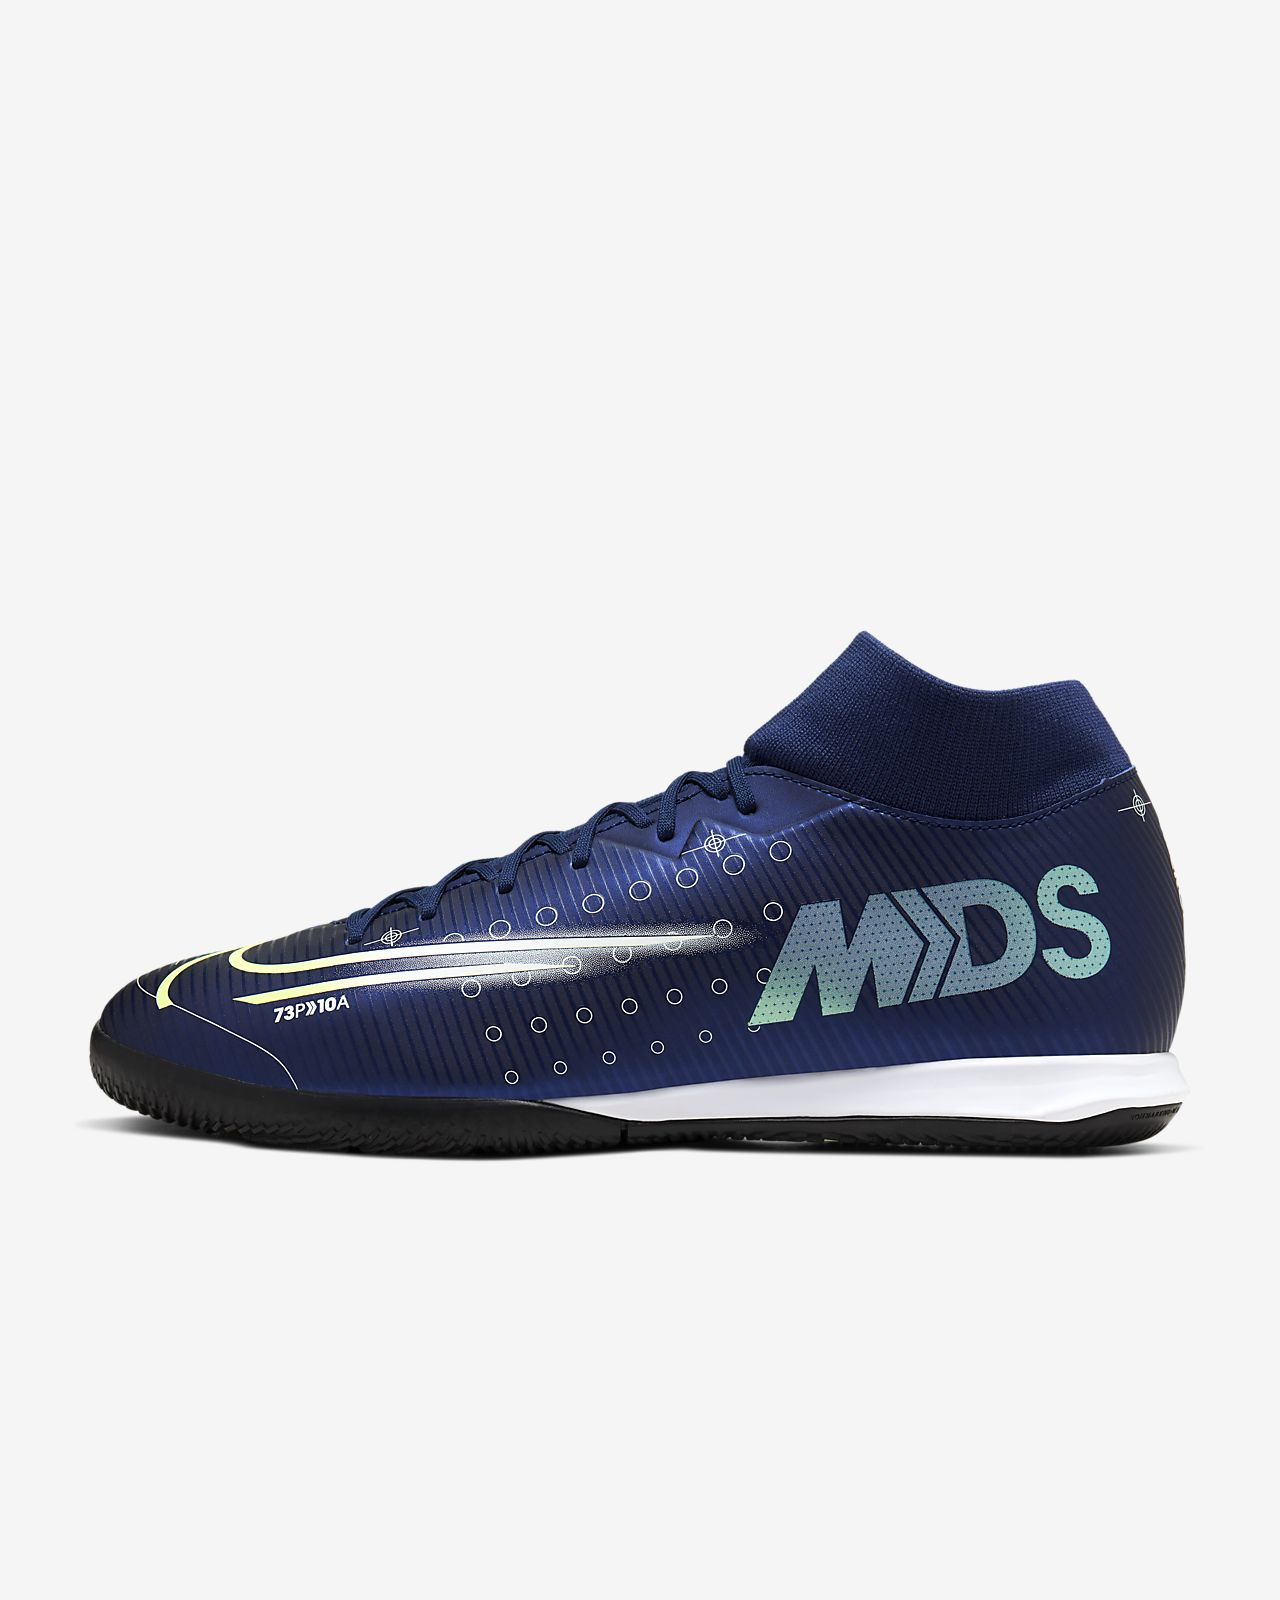 half off many fashionable outlet store sale Chaussure de football en salle Nike Mercurial Superfly 7 Academy MDS IC